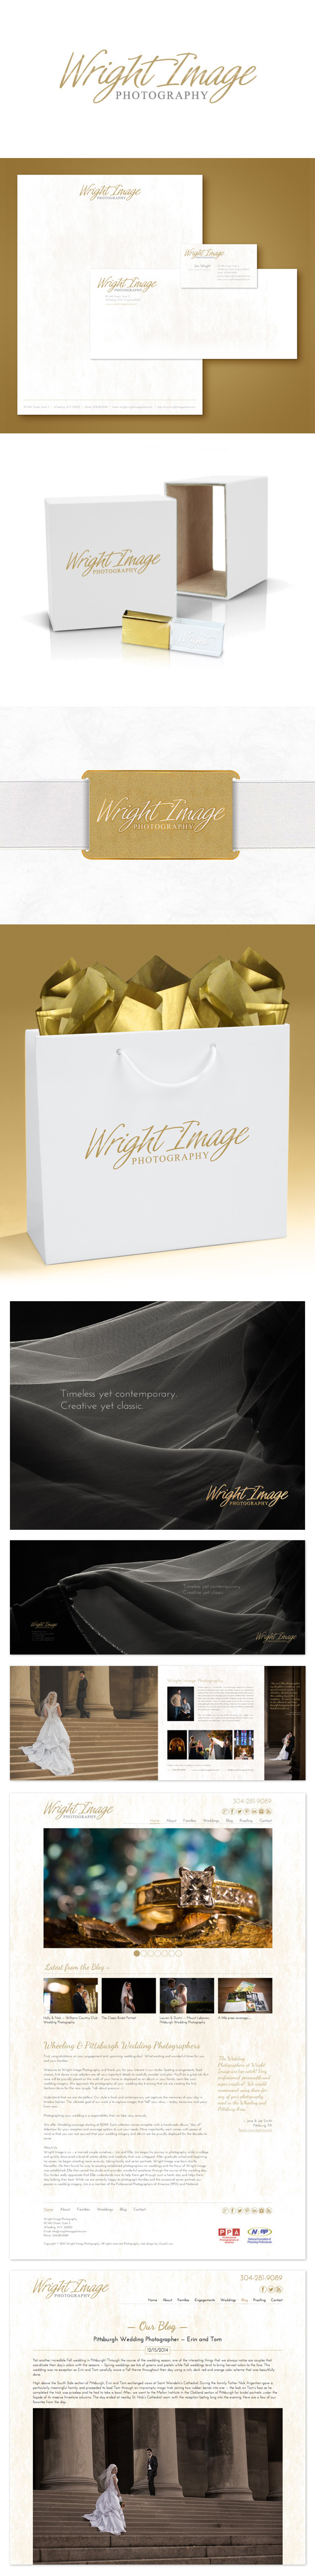 wright photography branding package